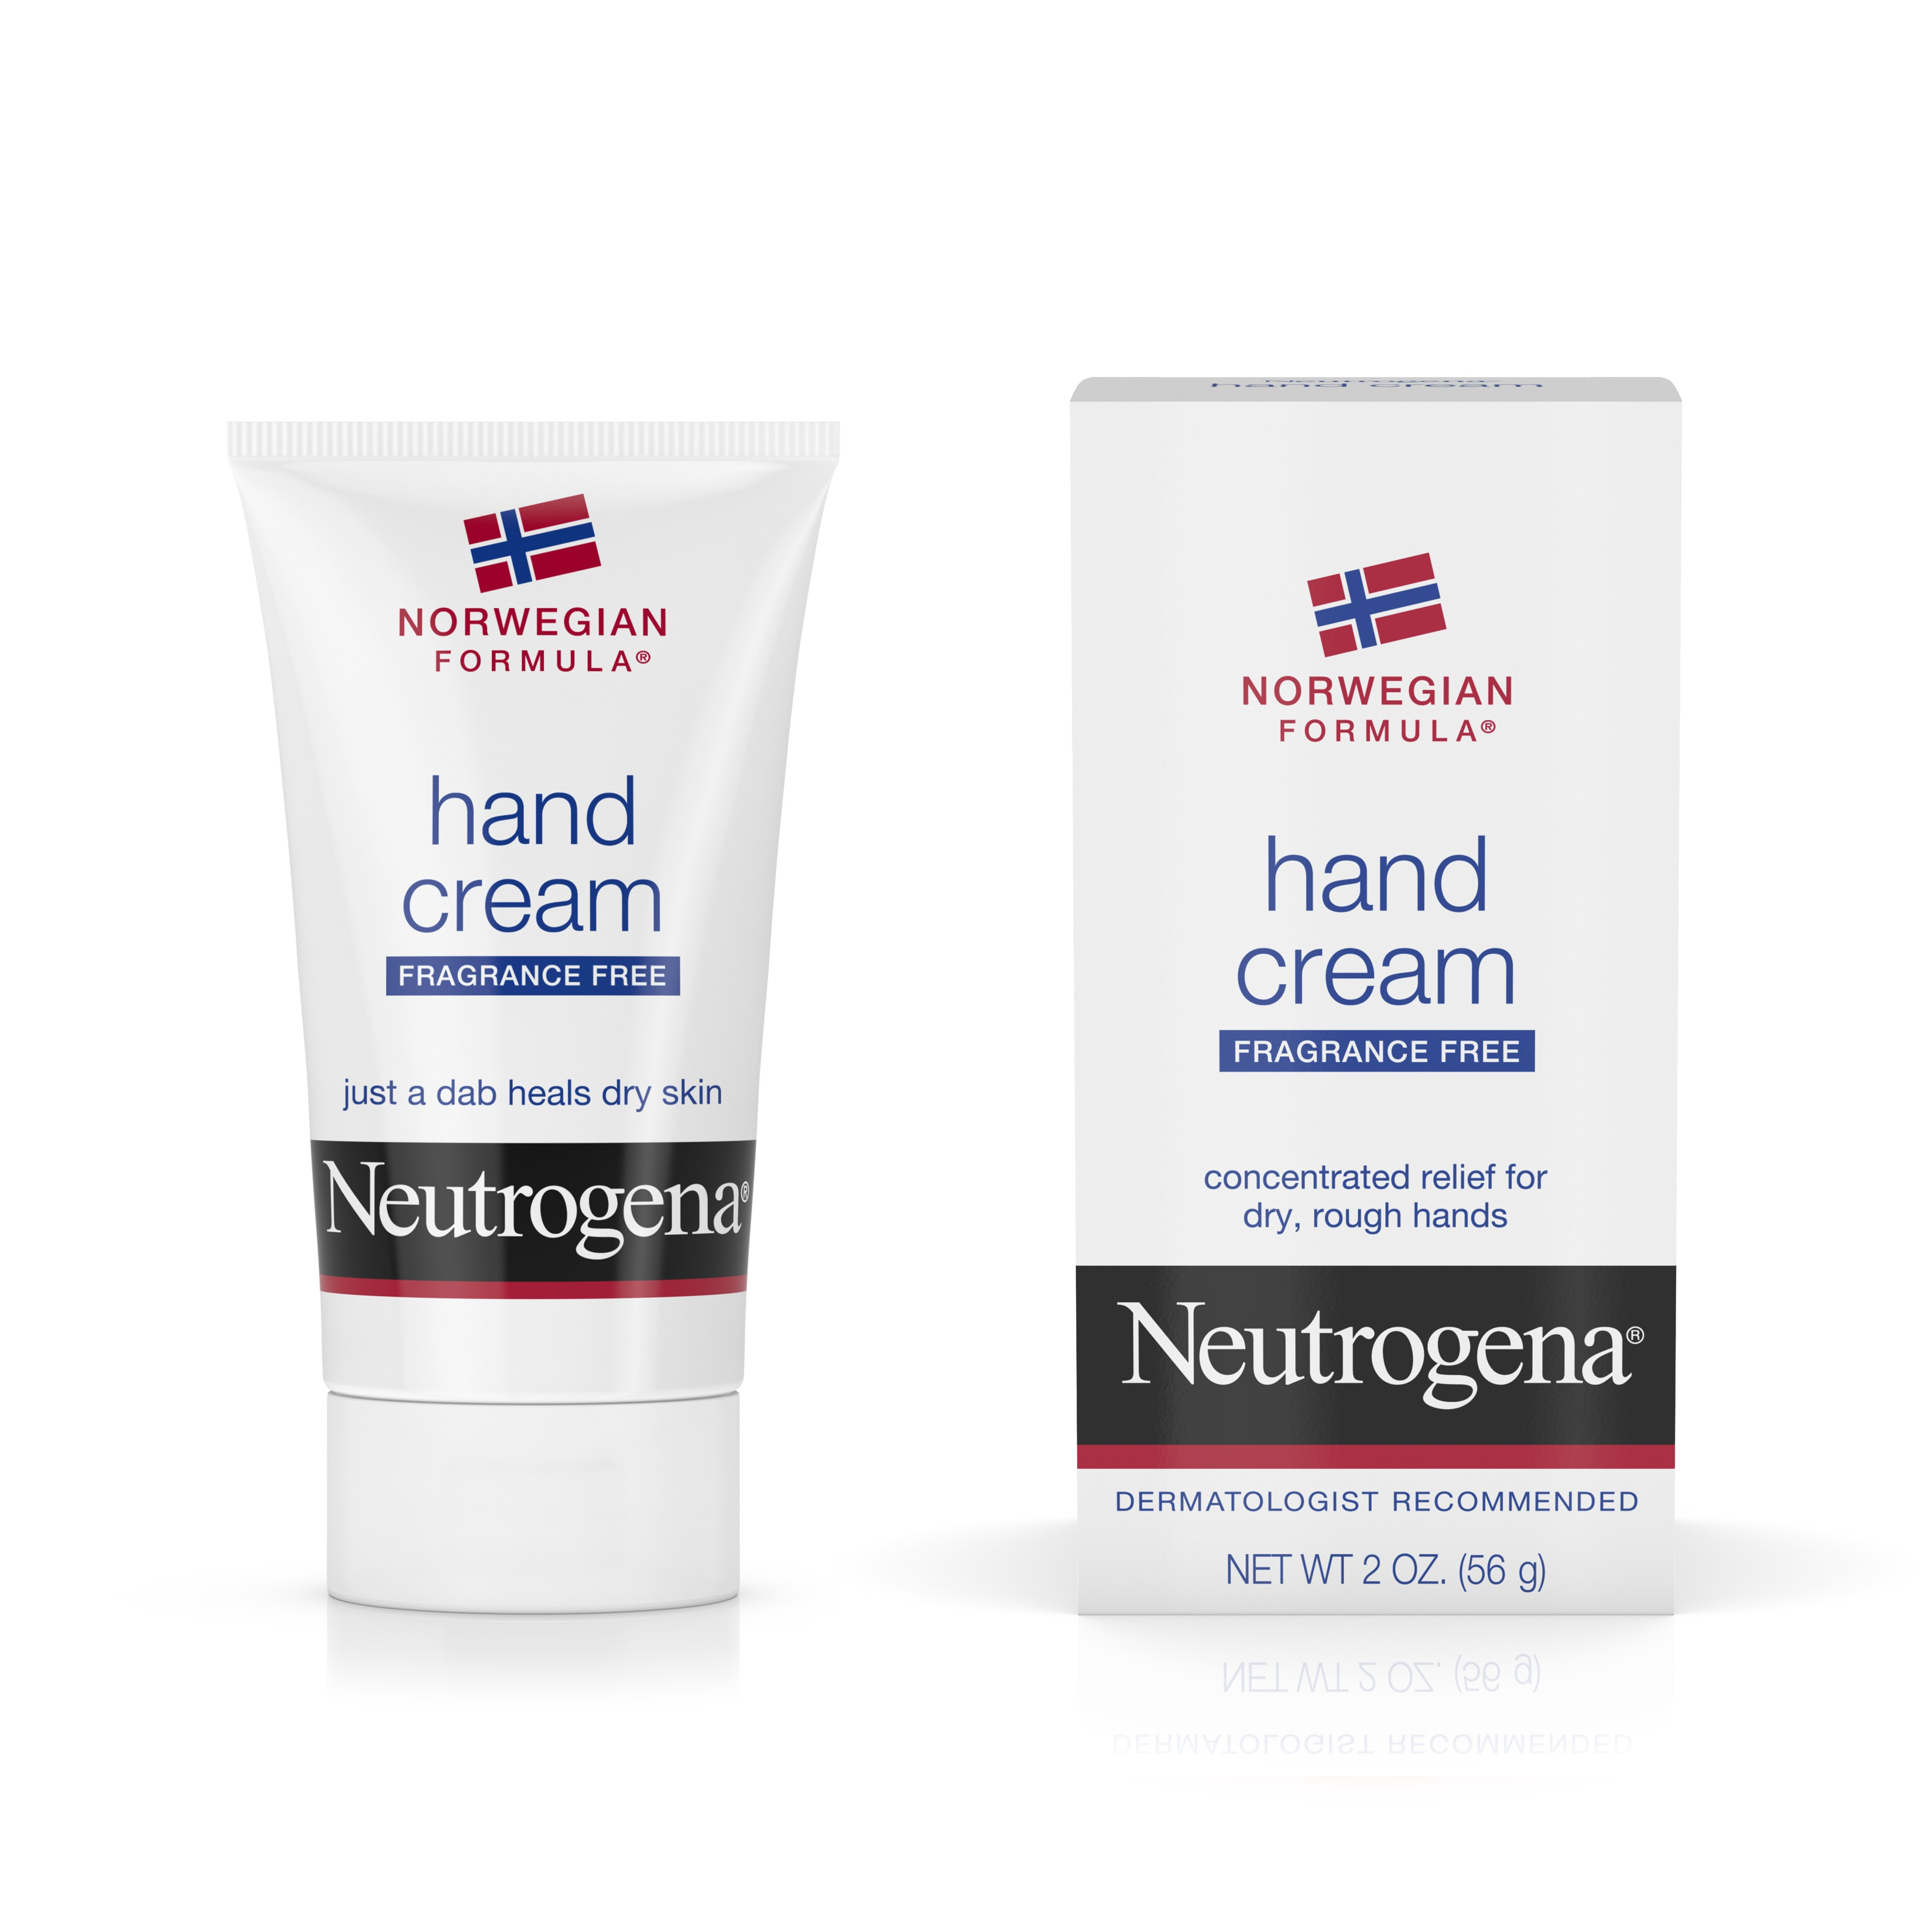 Neutrogena Norwegian Formula Dry Hand Cream, Fragrance-Free, 2 oz